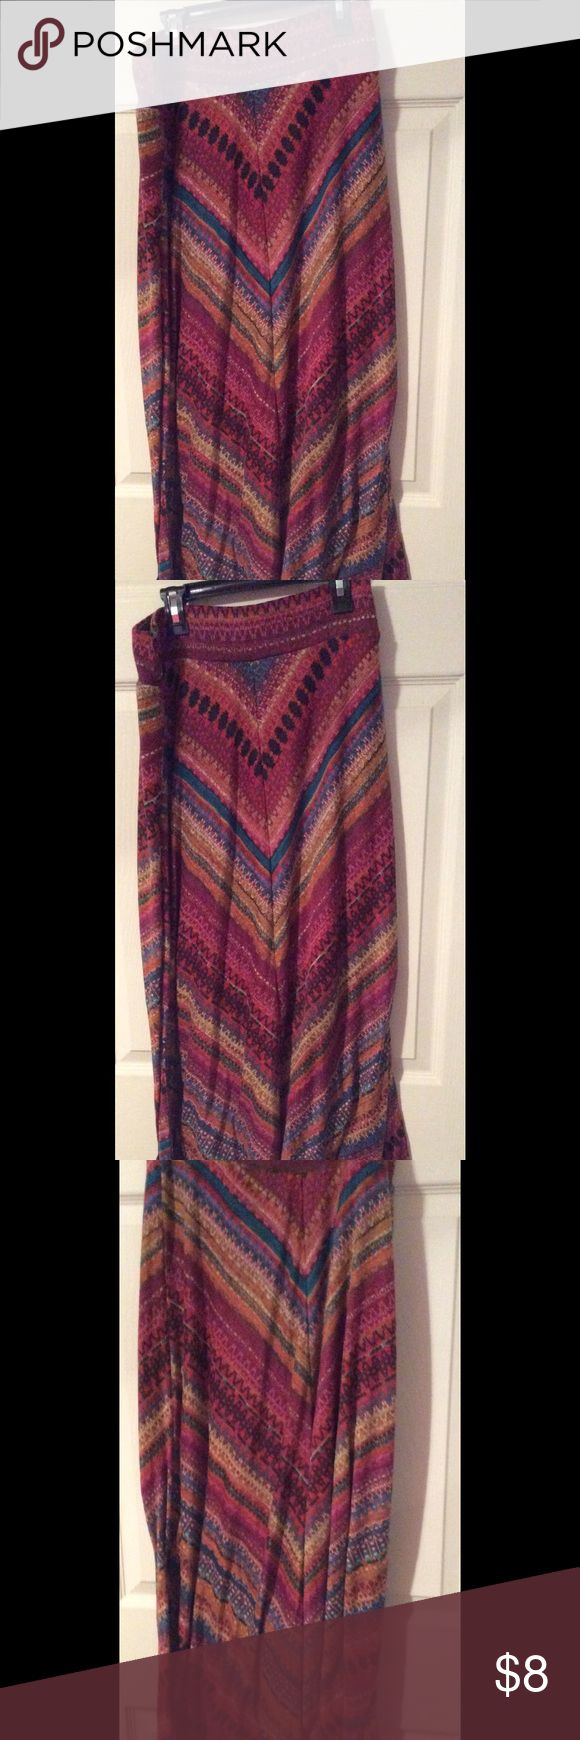 Cute maxi skirt This cute maxi skirt is in great condition worn less than five times size small is a JohnPaulRichard johnpaulrichard Skirts Maxi